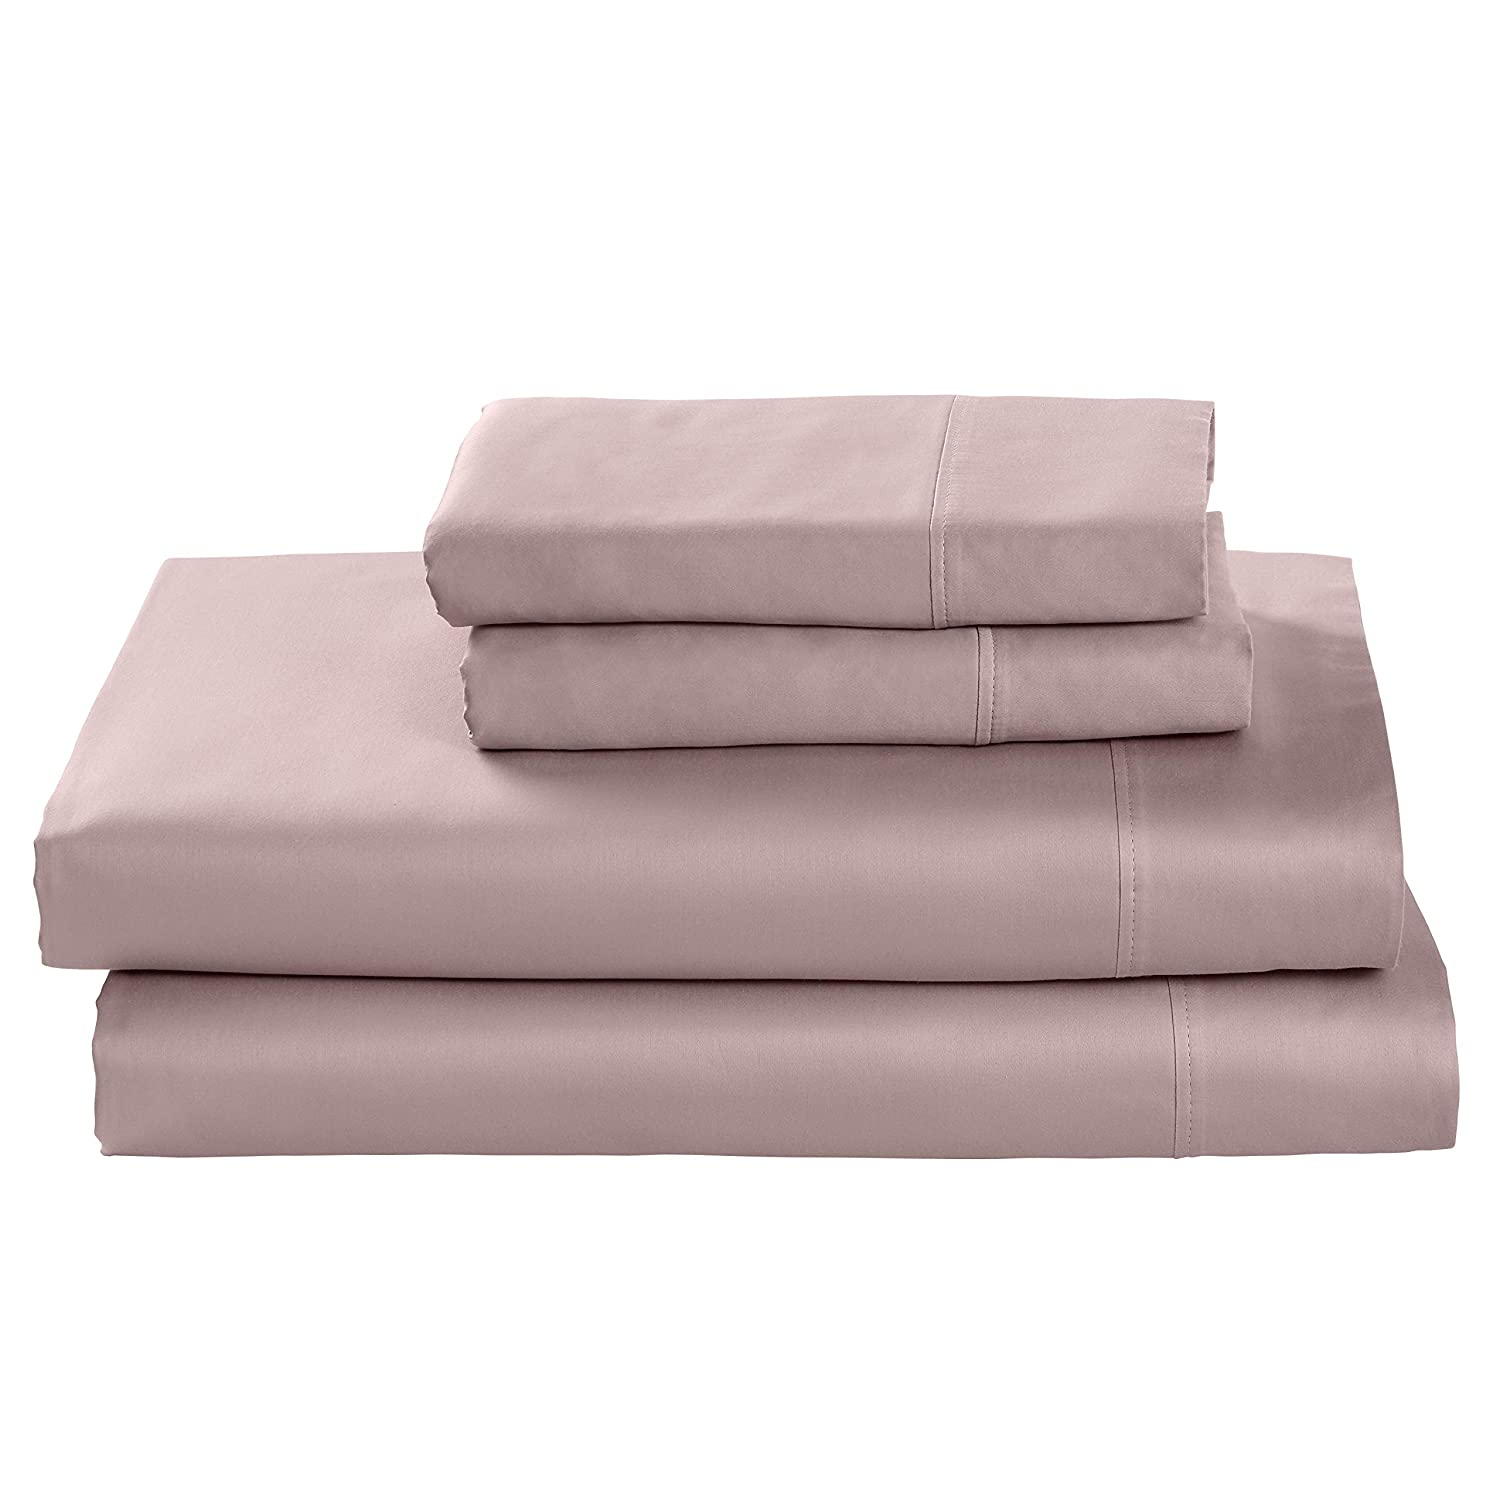 Rivet Cotton Tencel Bed Sheet Set, Soft and Breathable